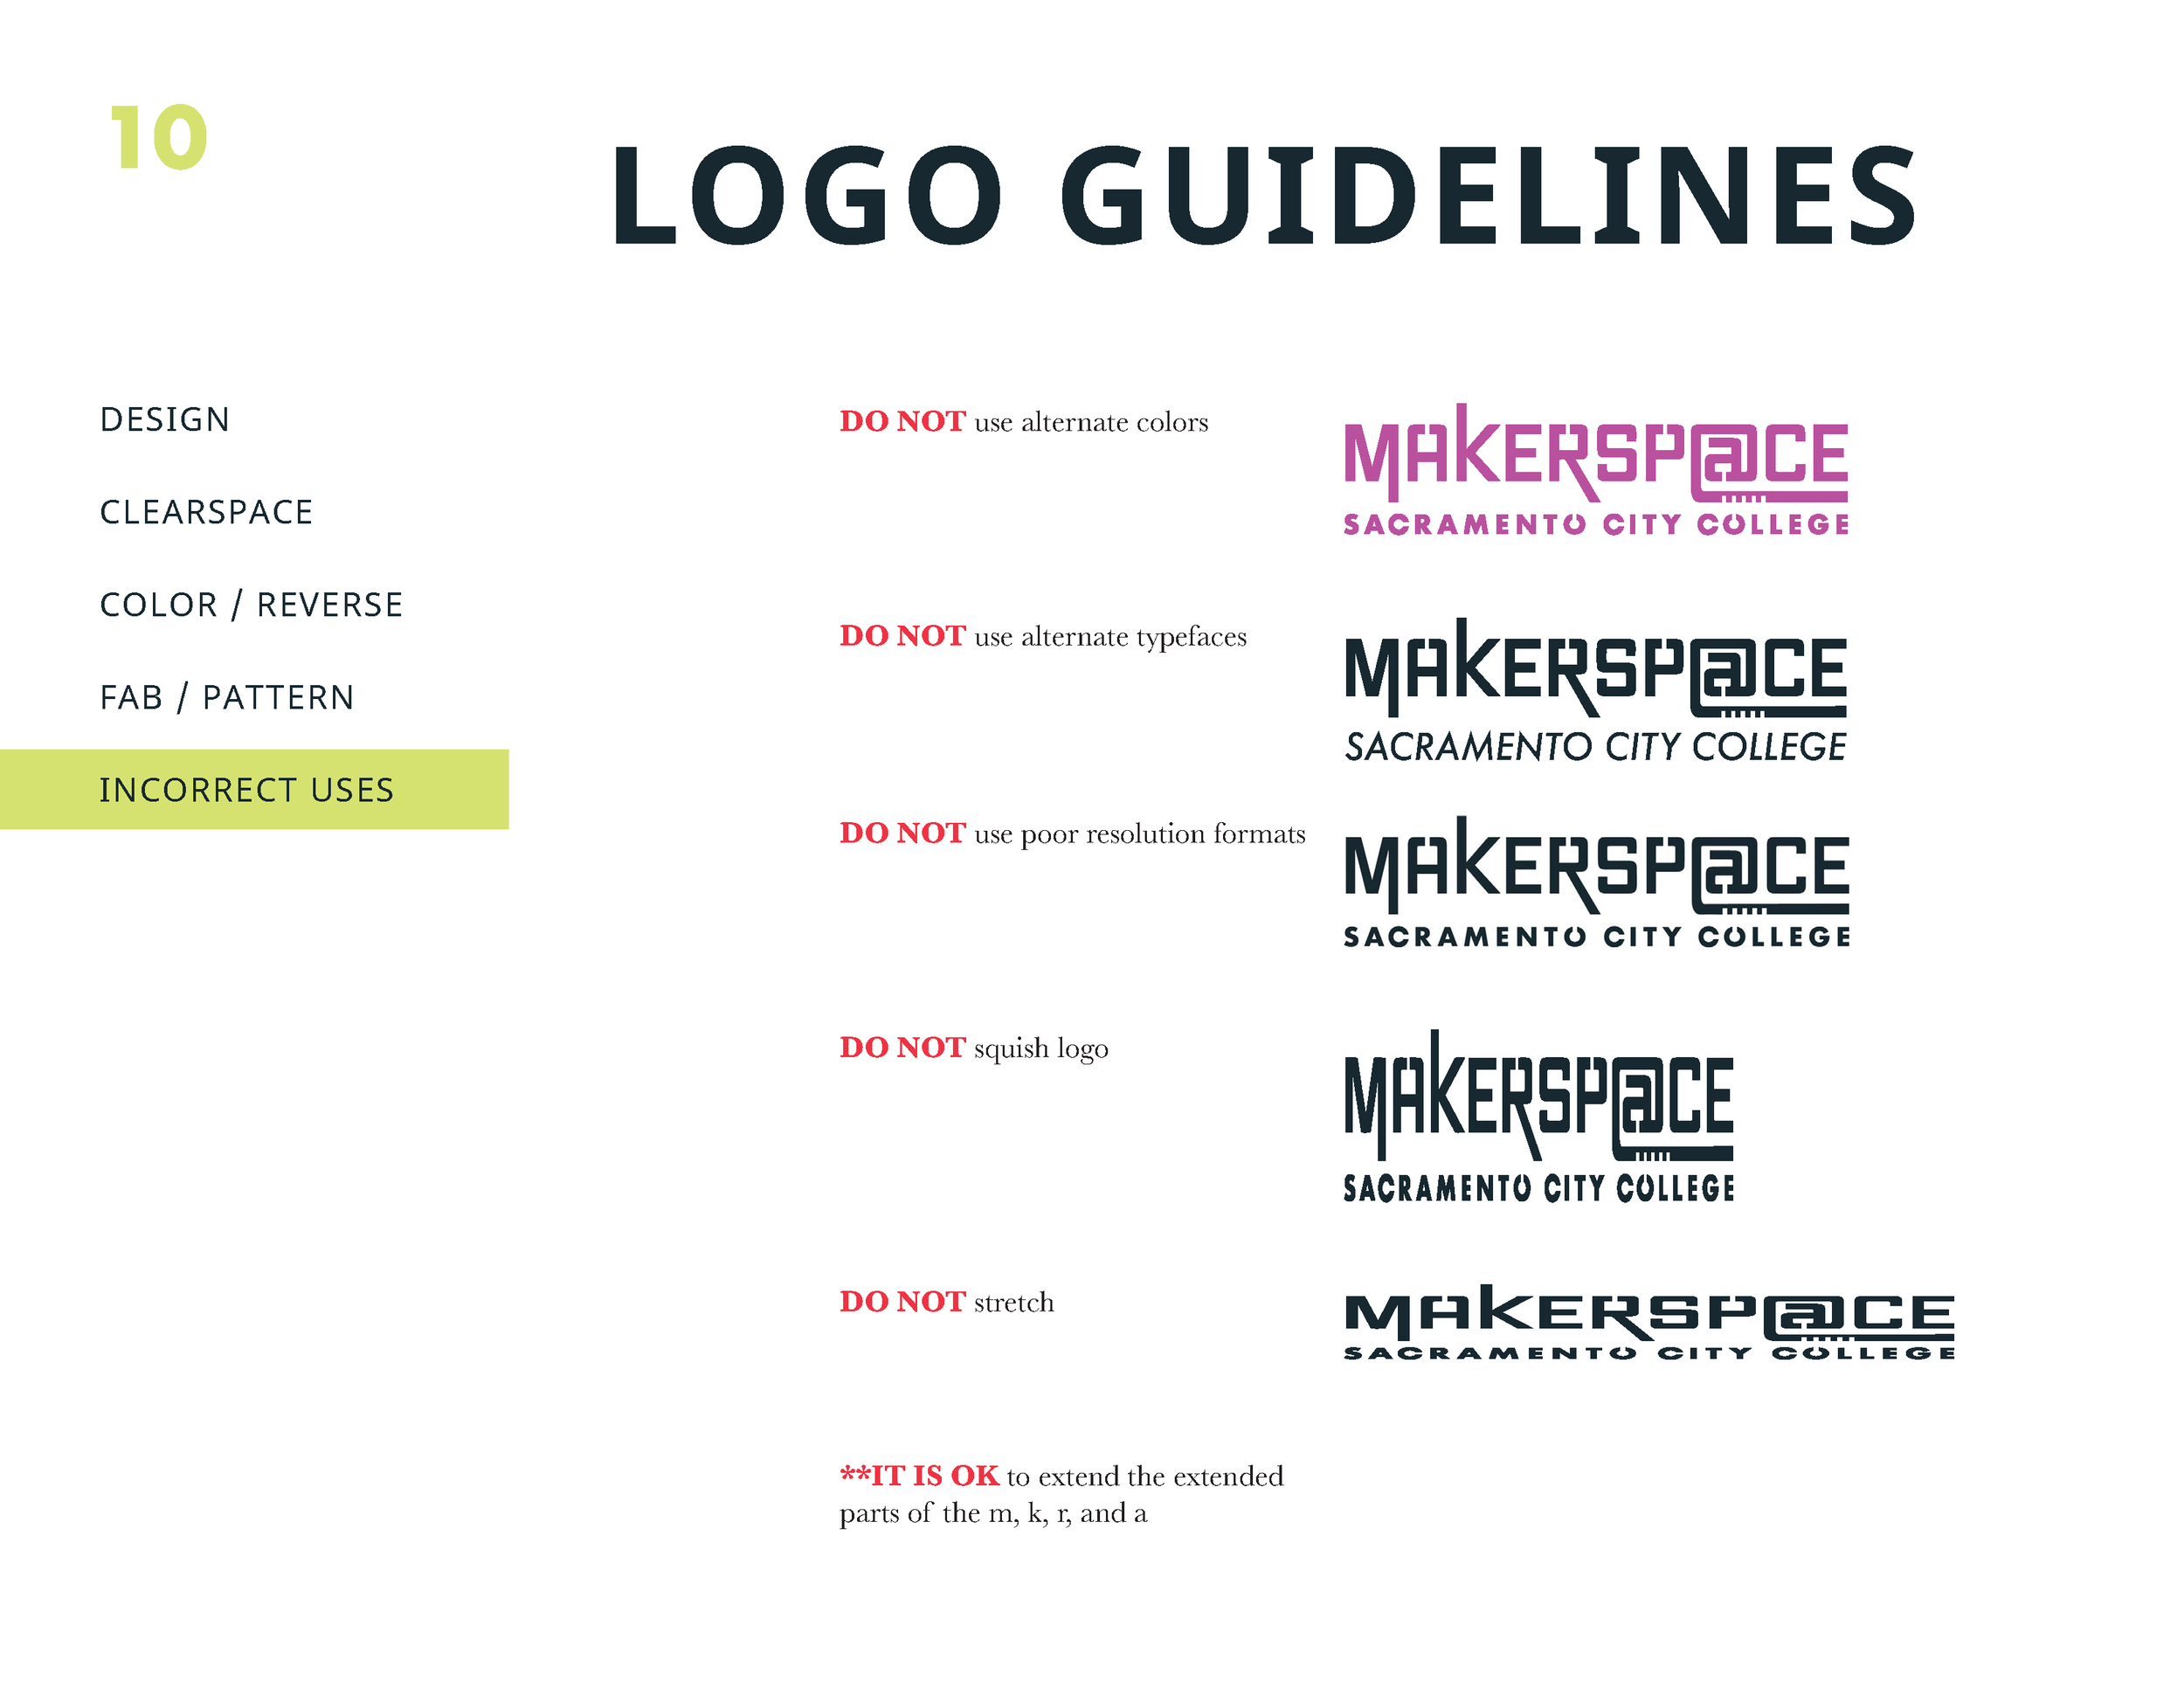 Makerspace_styleguide_Page_10.png